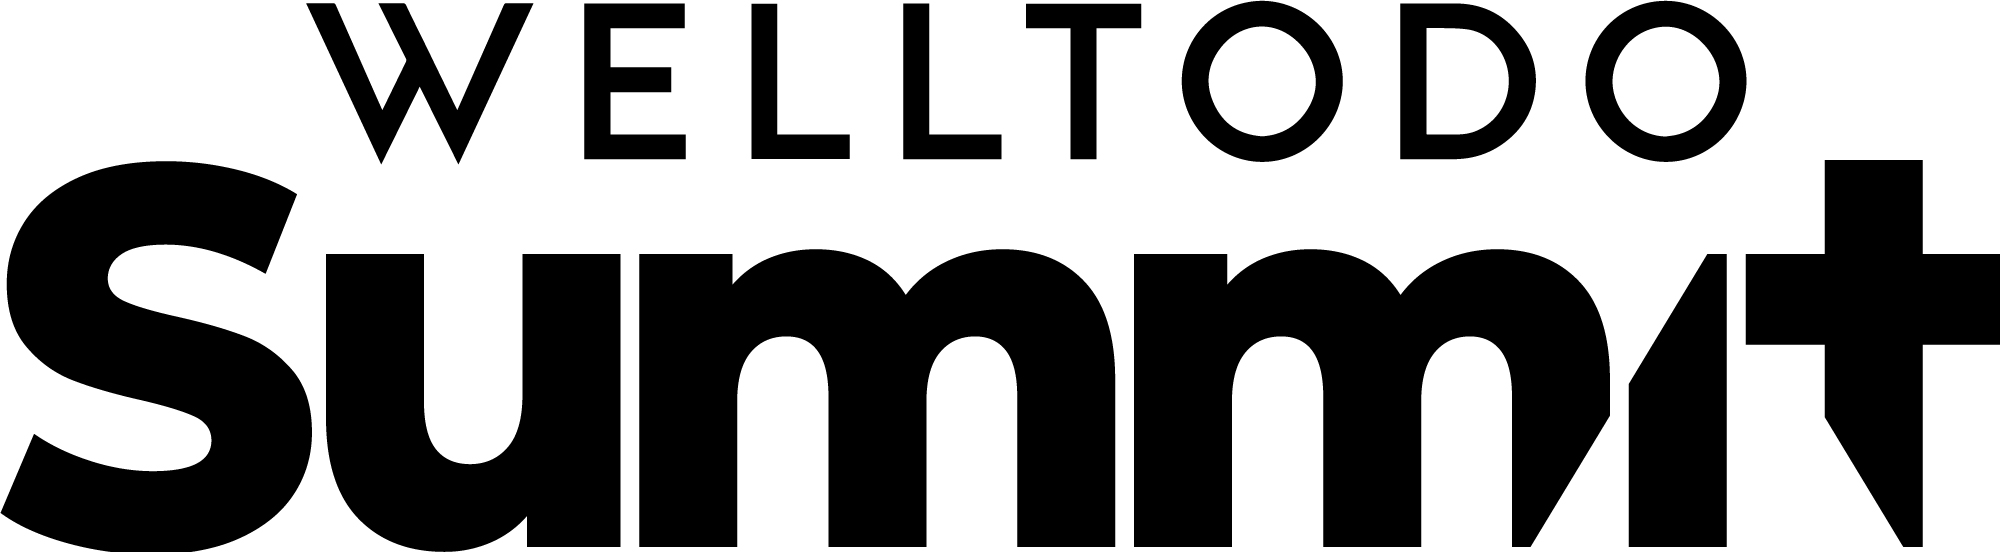 Welltodo Summit 2019 is London's pinnacle wellness industry event!